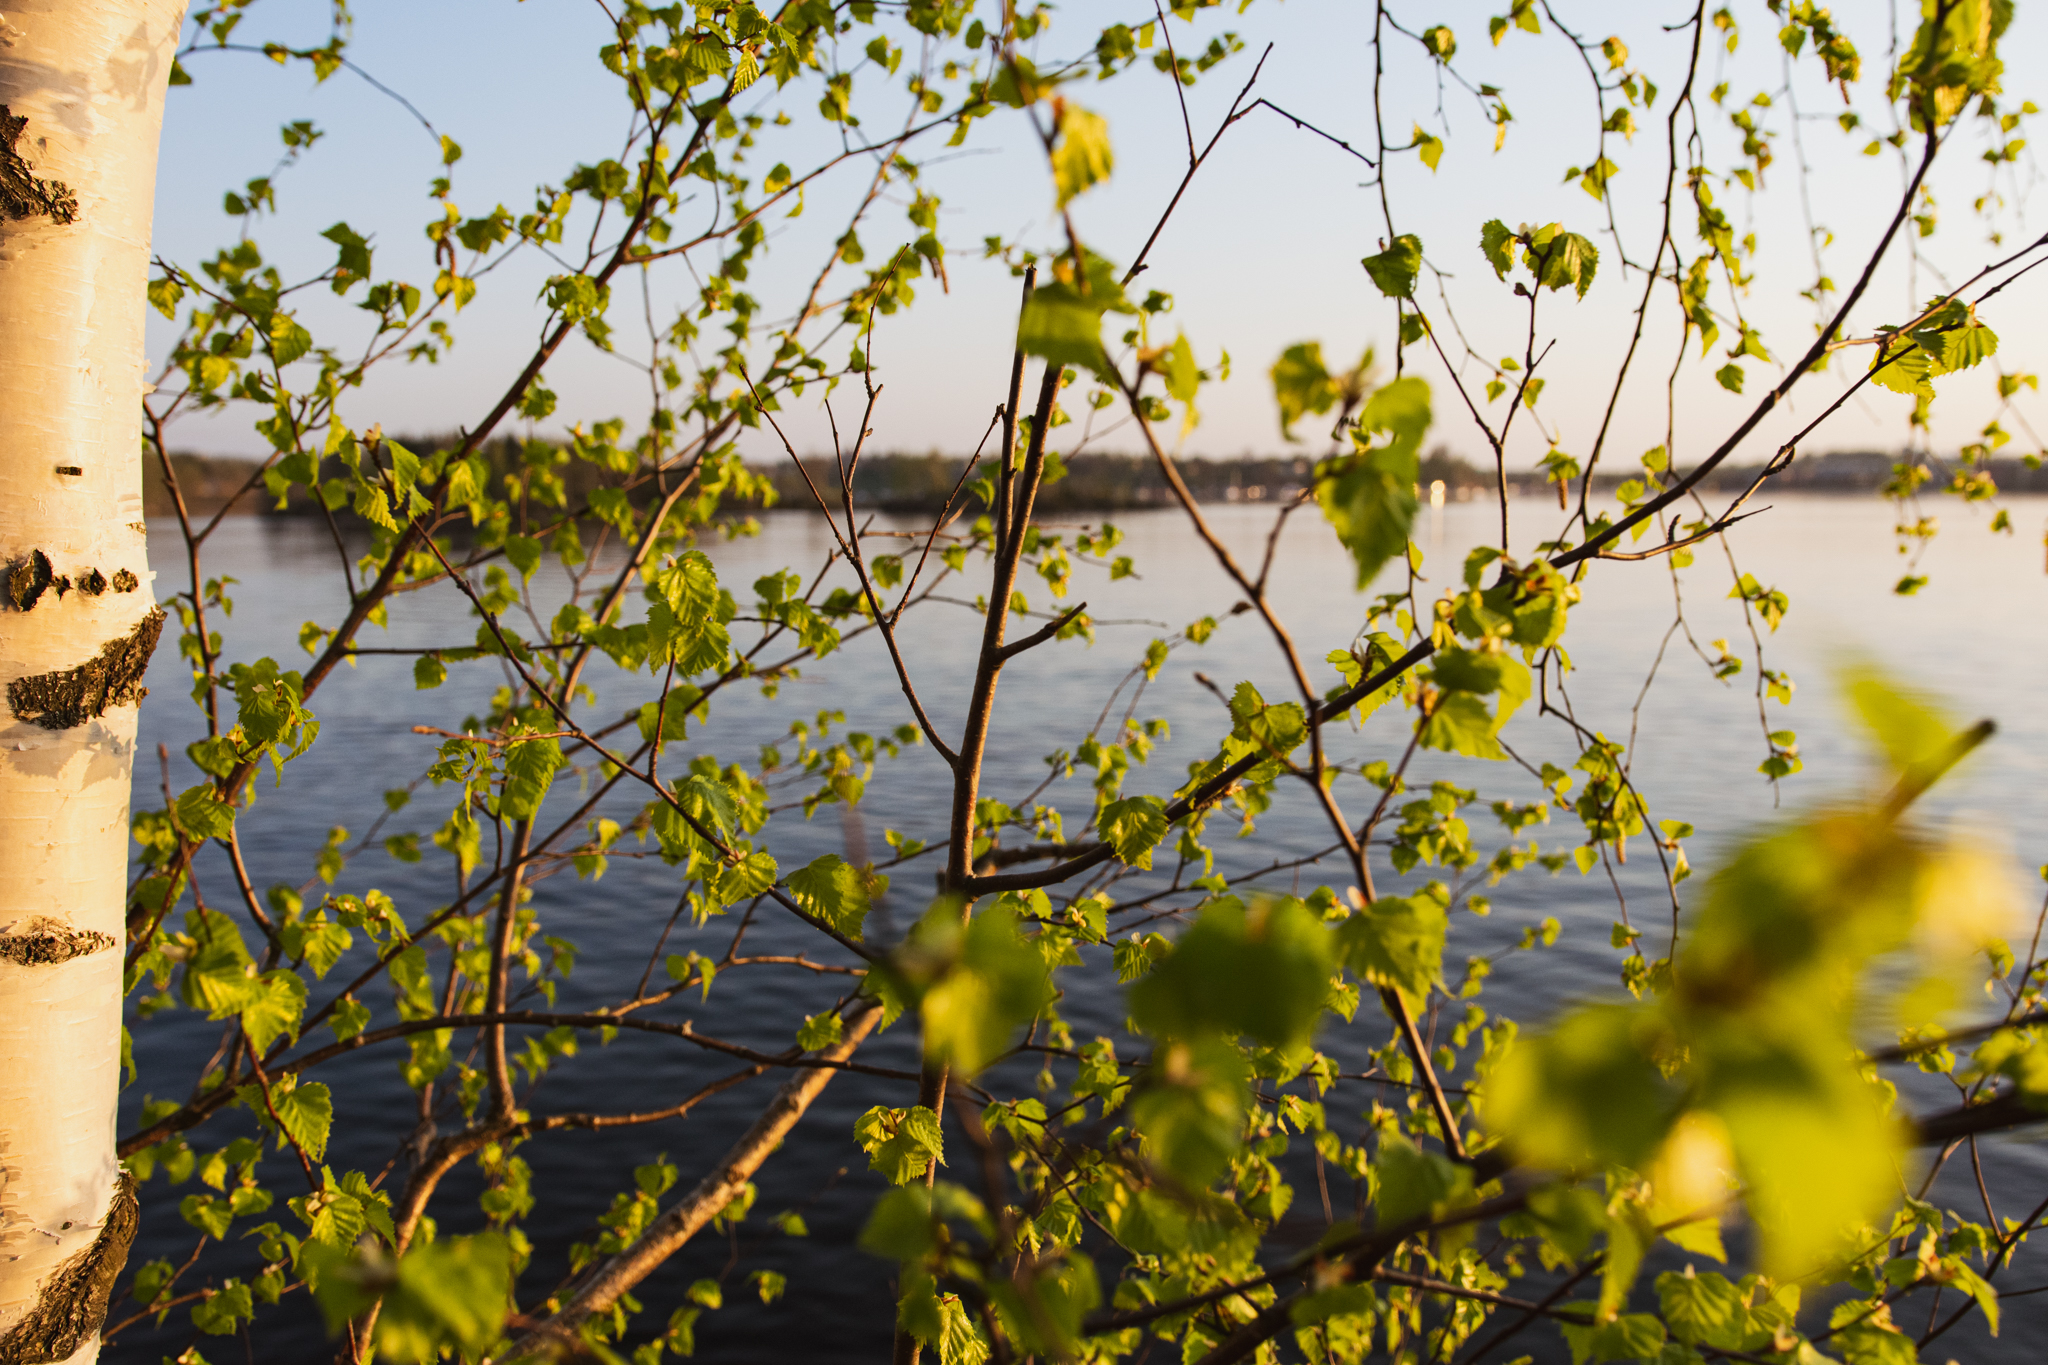 Spring nature greenness by the blue lake Saimaa in Finland